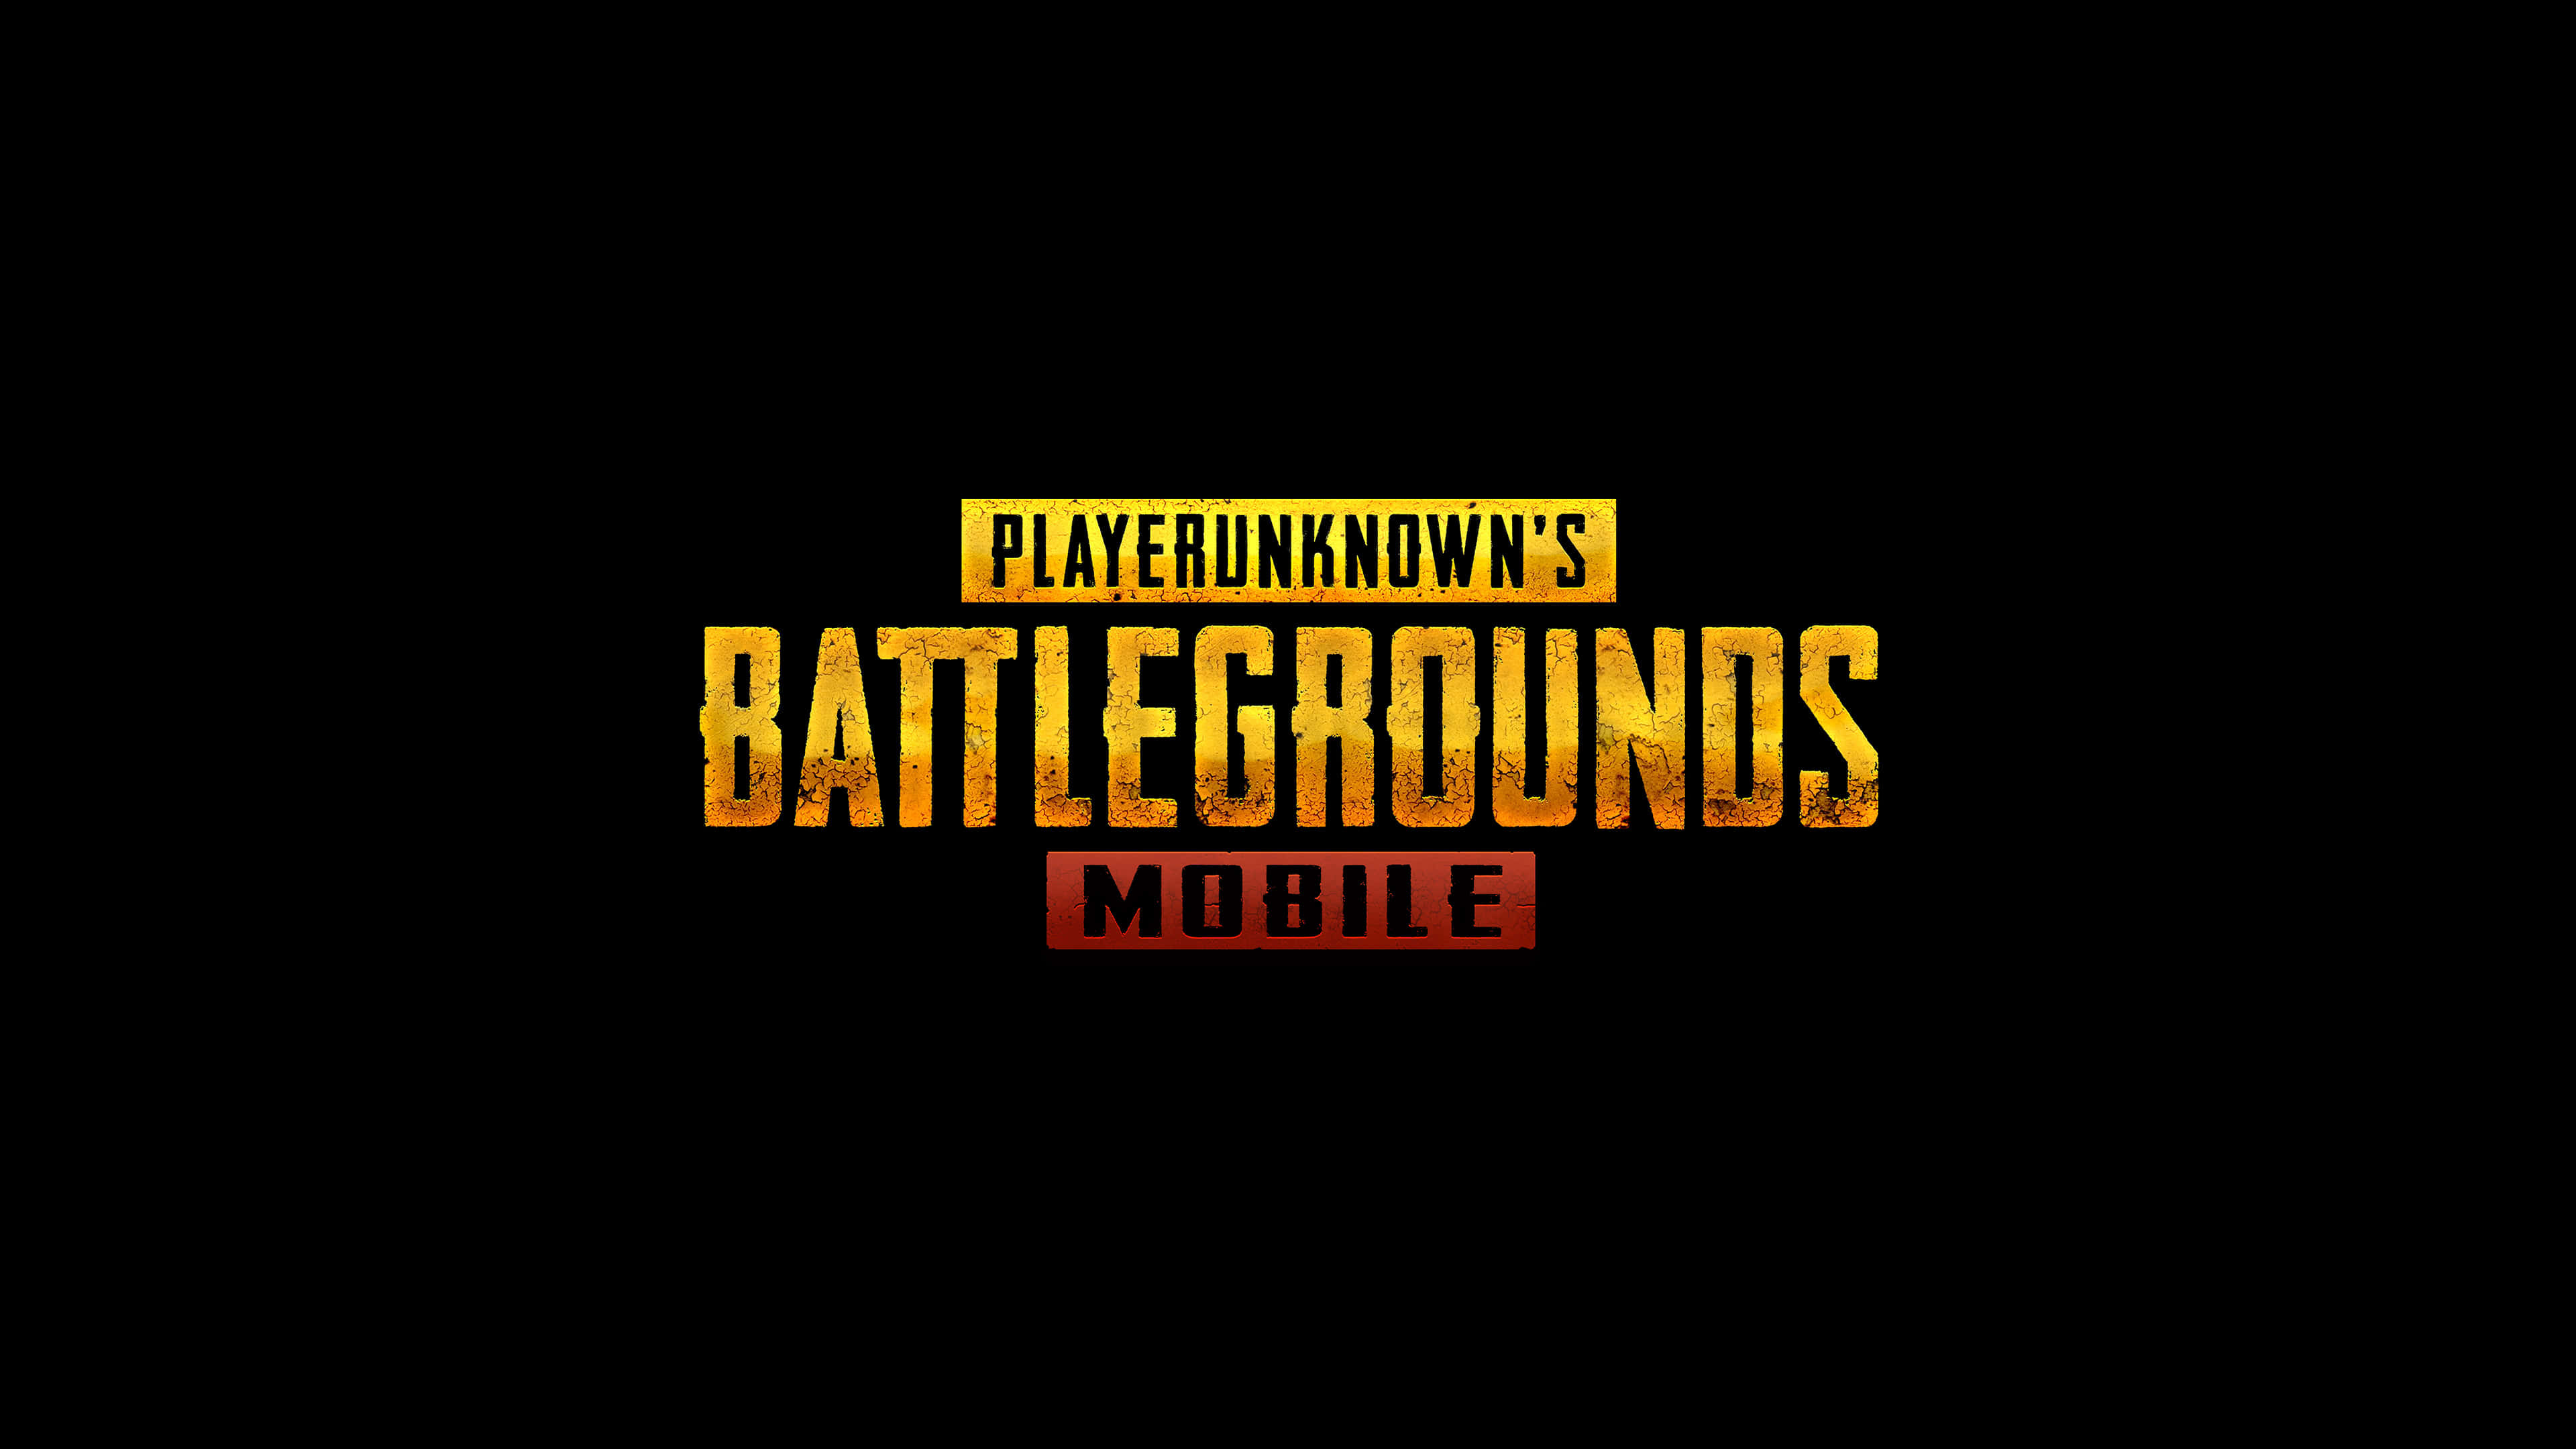 pubg mobile player unknown battlegrounds mobile logo uhd 4k wallpaper